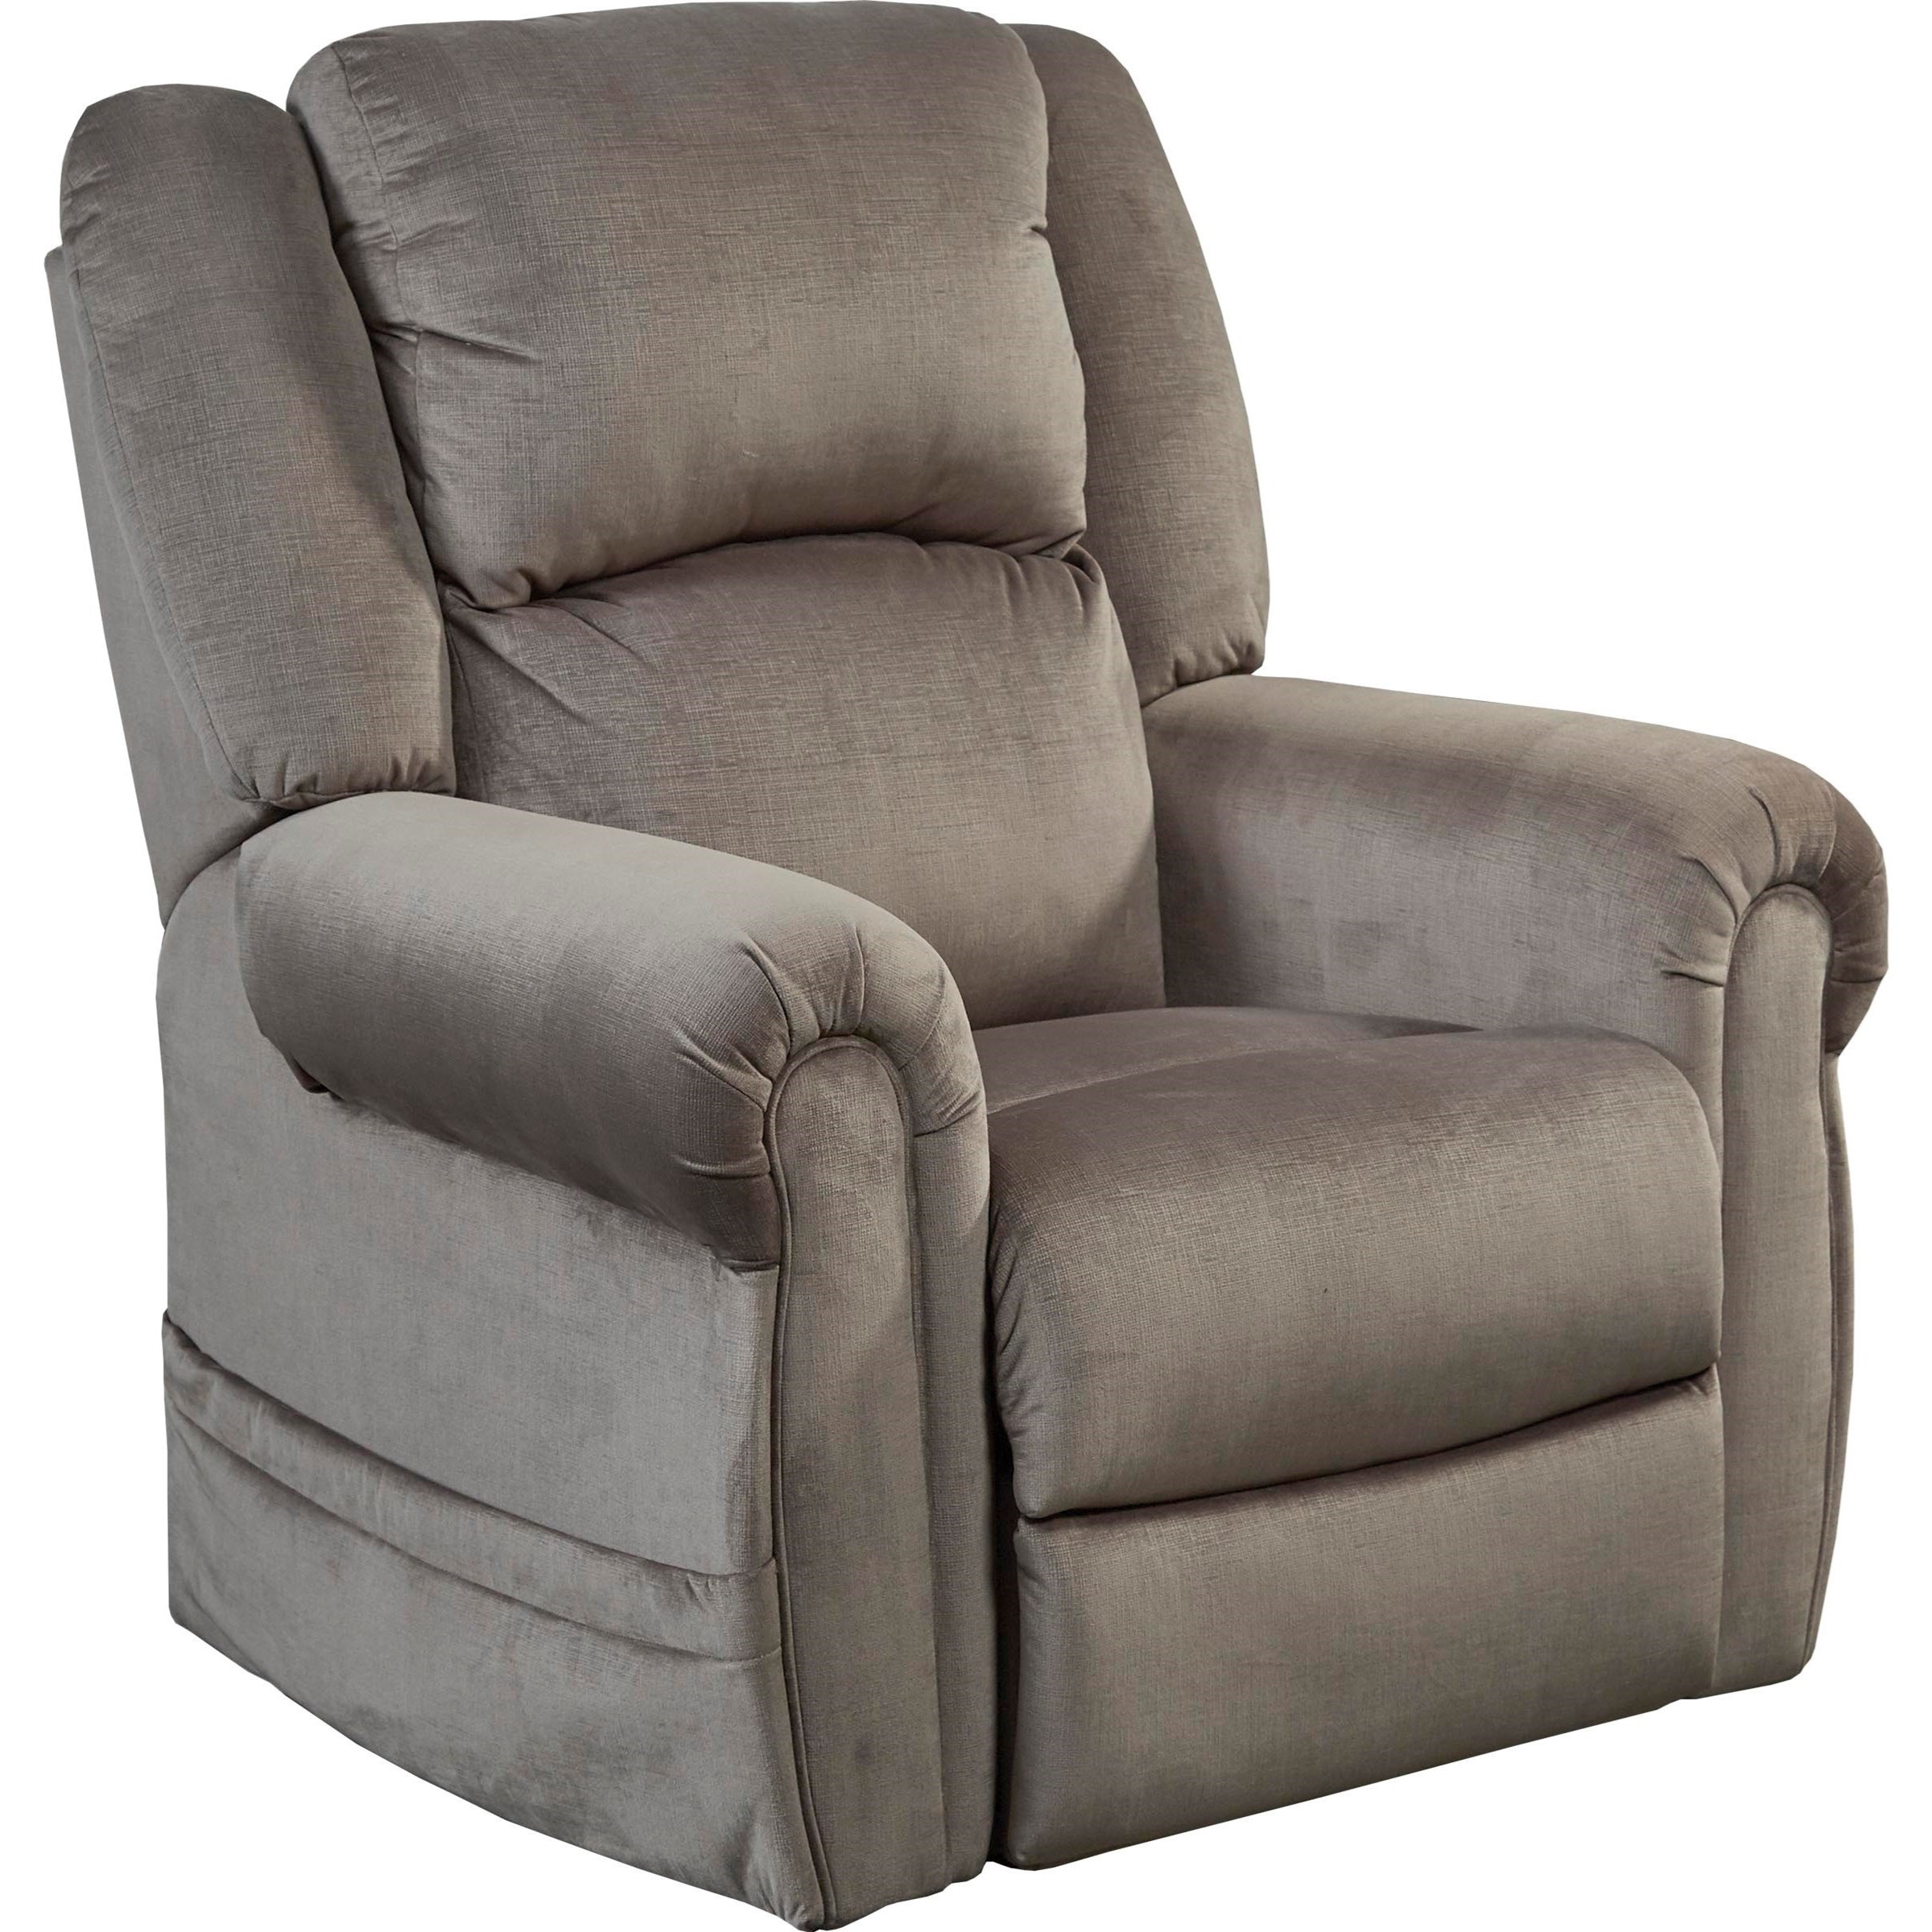 Catnapper Motion Chairs And ReclinersSpencer Lift Recliner With Power  Headrest ...